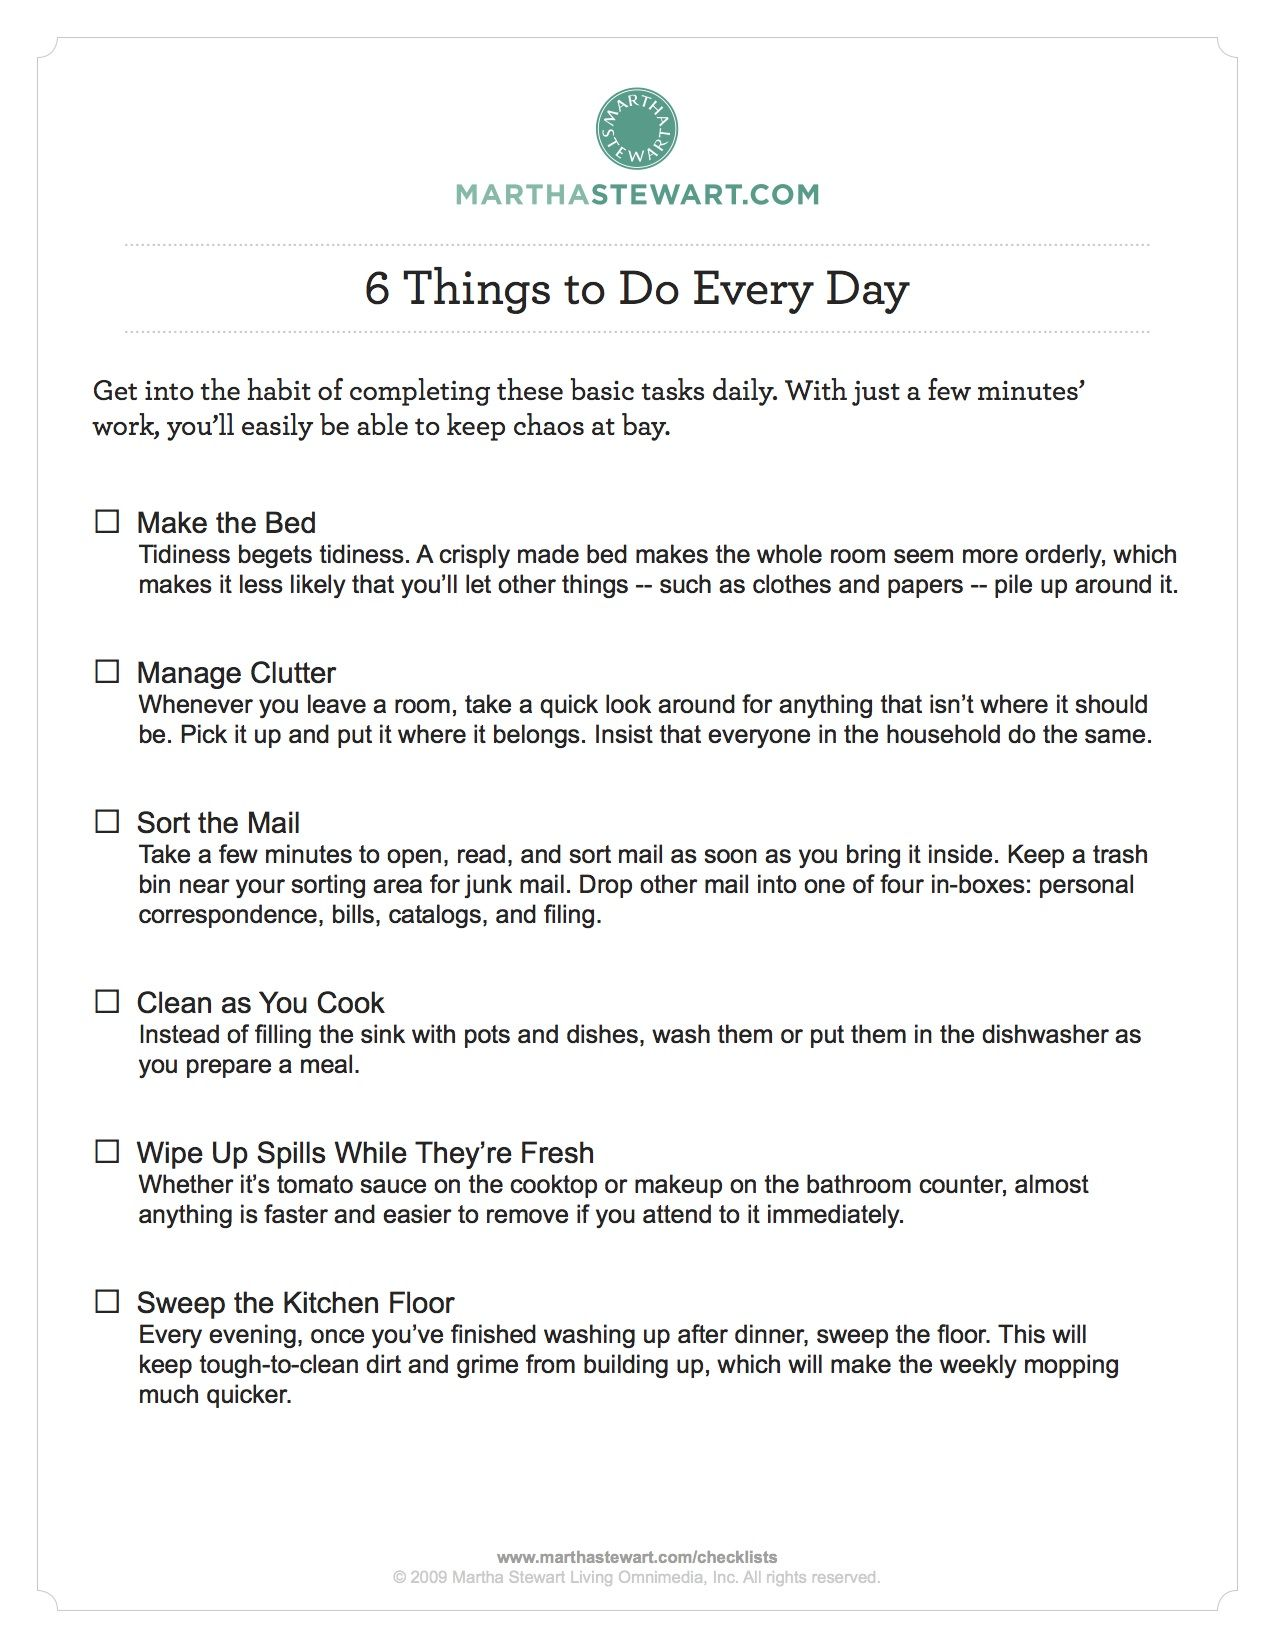 Martha Stewart cleaning and organizing checklists. Daily, Weekly, Monthly  and Seasonal things to - The Golden Rules Of Cleaning: What You Should Be Cleaning When